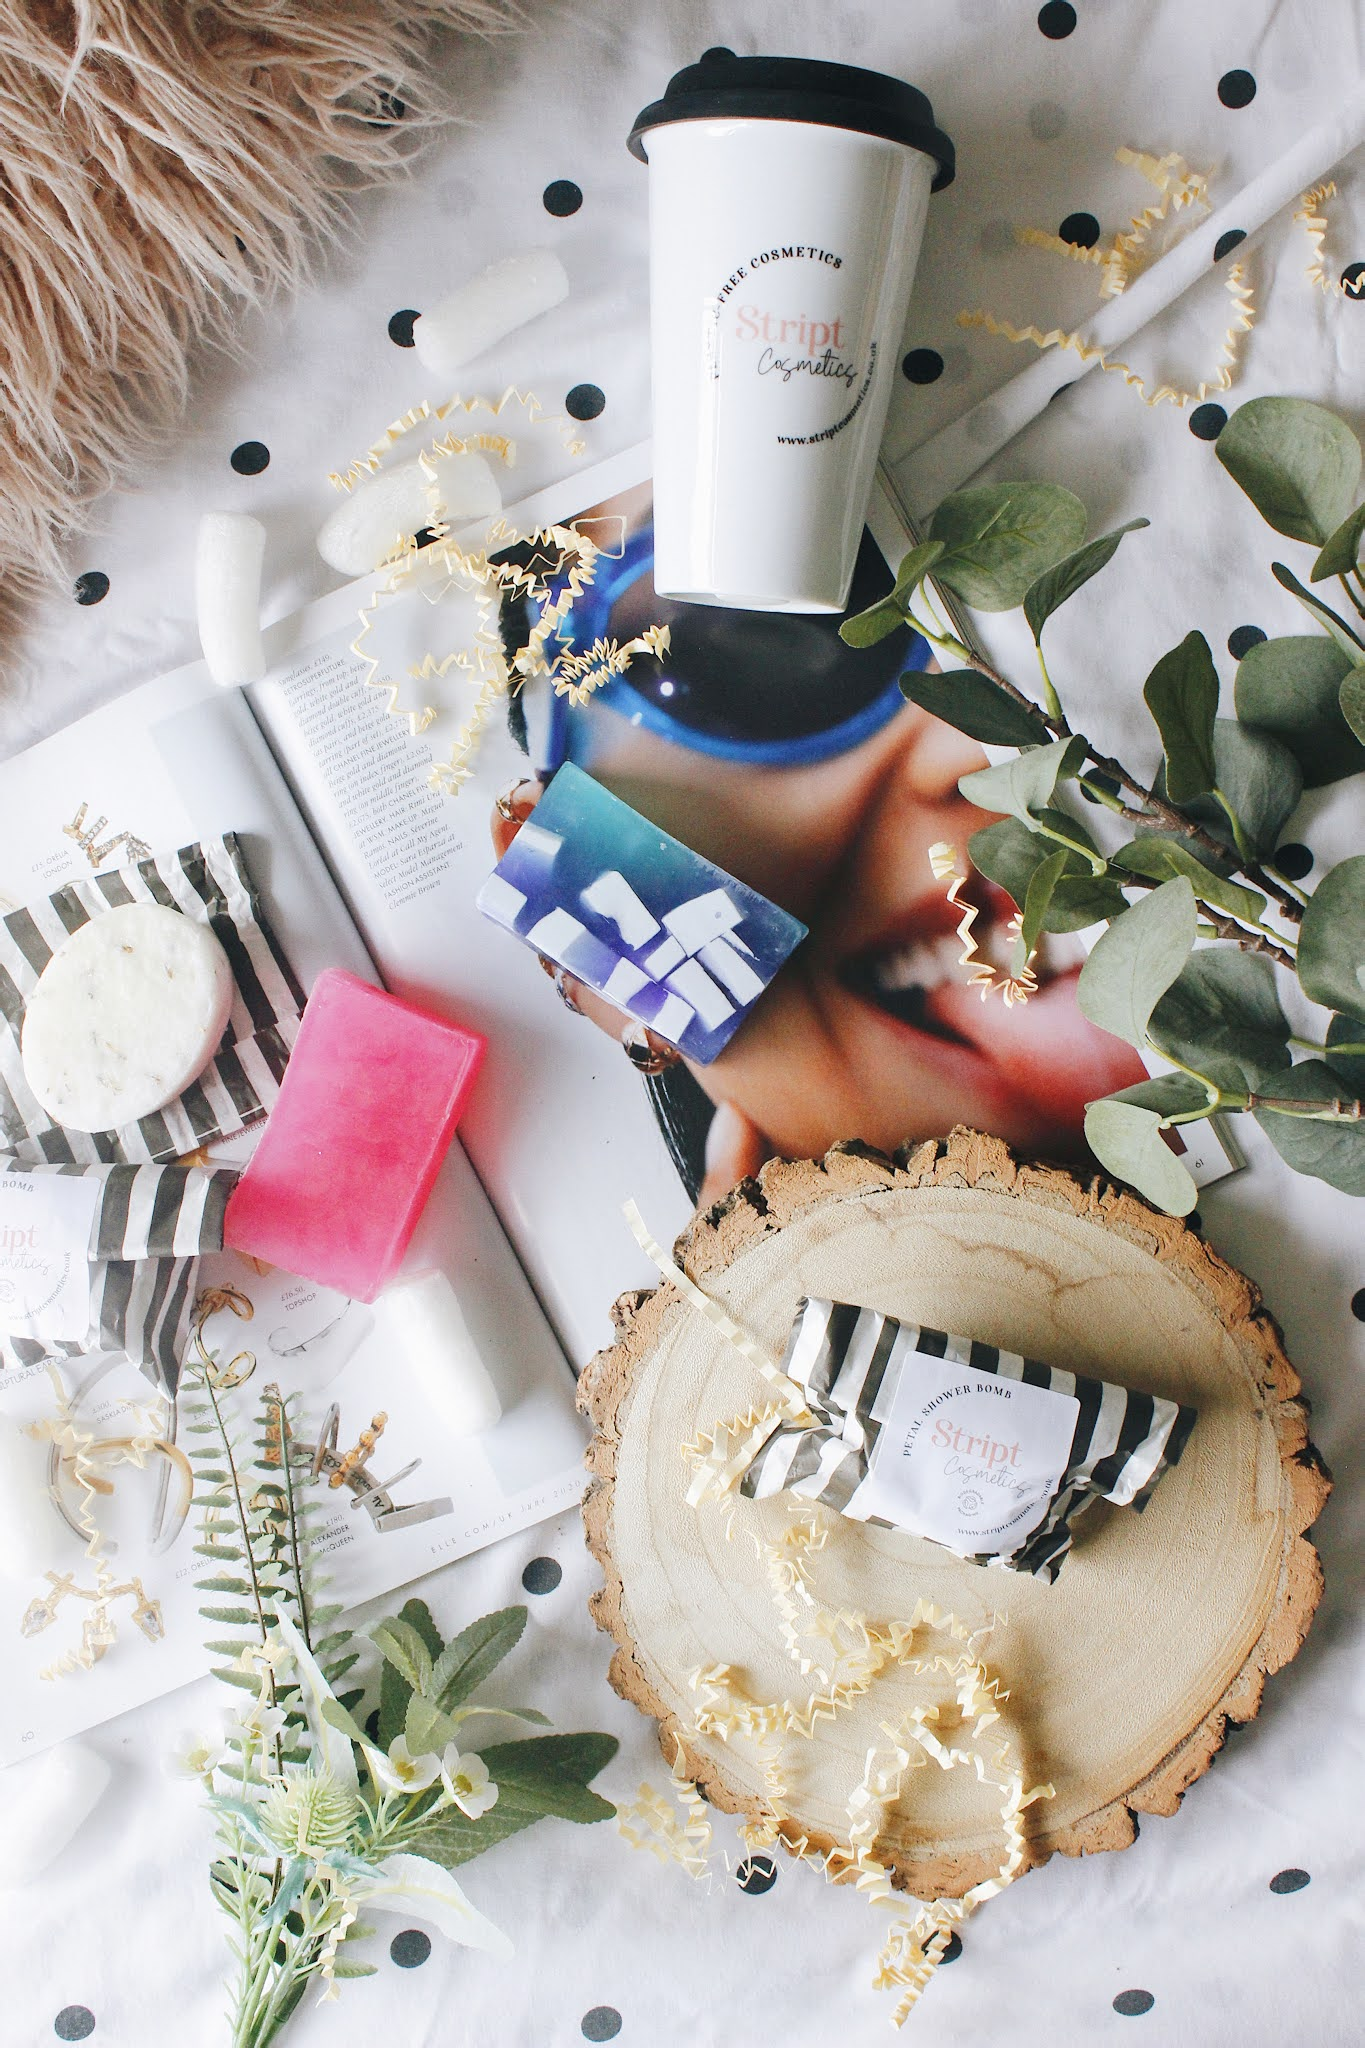 latest sustainable buys with Stript Cosmetics - Sarahlaublogs